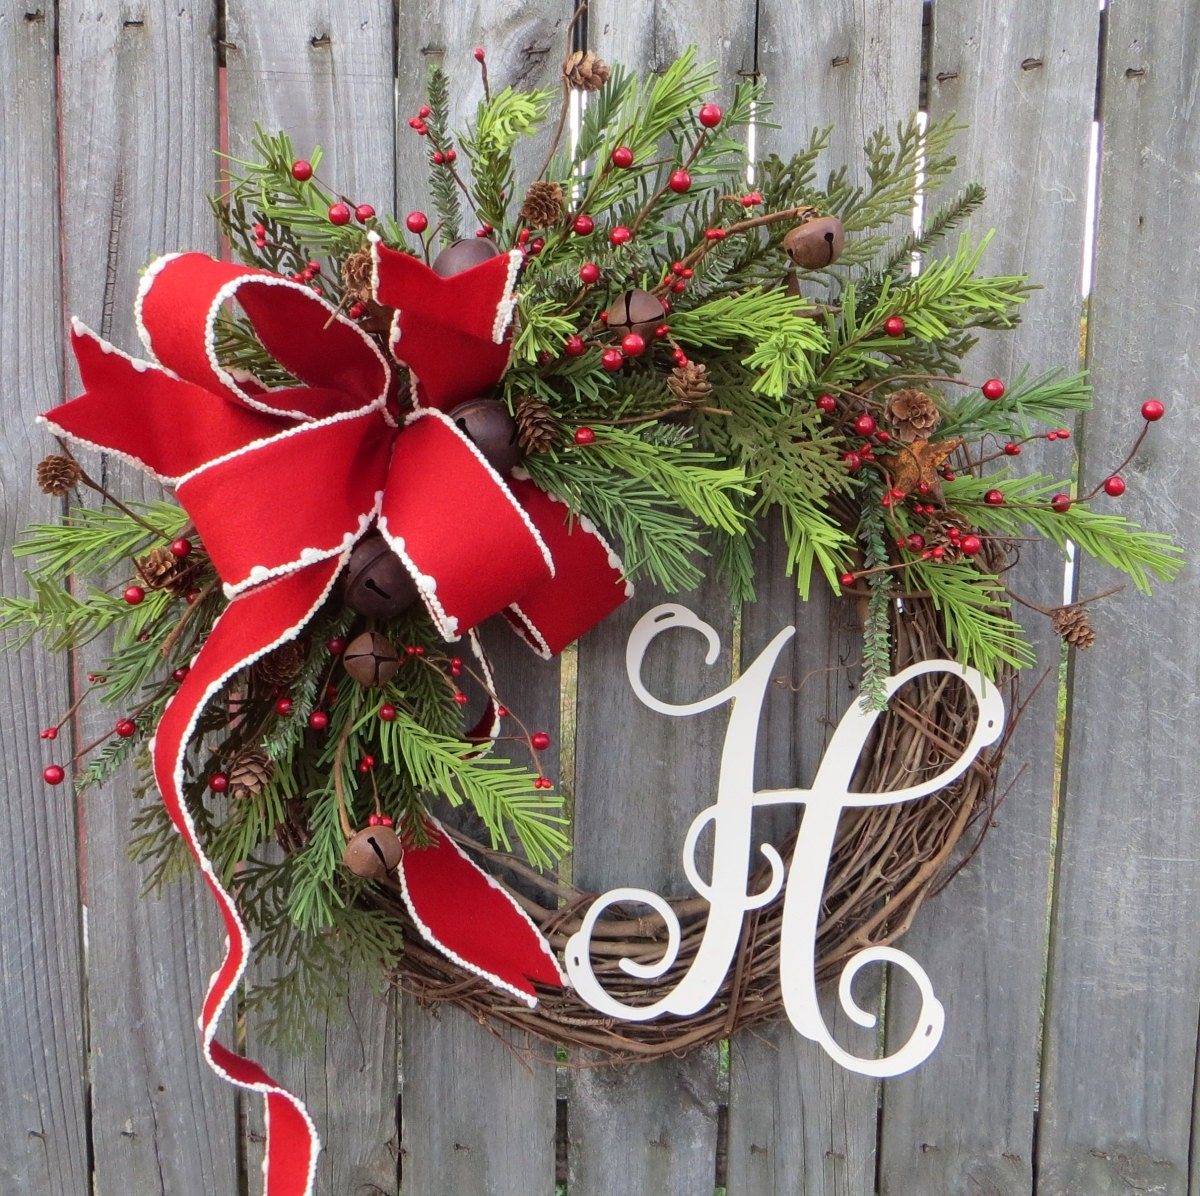 Christmas Grapevine Wreath With Rustic Bells Christmas Wreath Holiday Wreath Christmas Wreath Monogram Christmas Wreath Wreath Initial